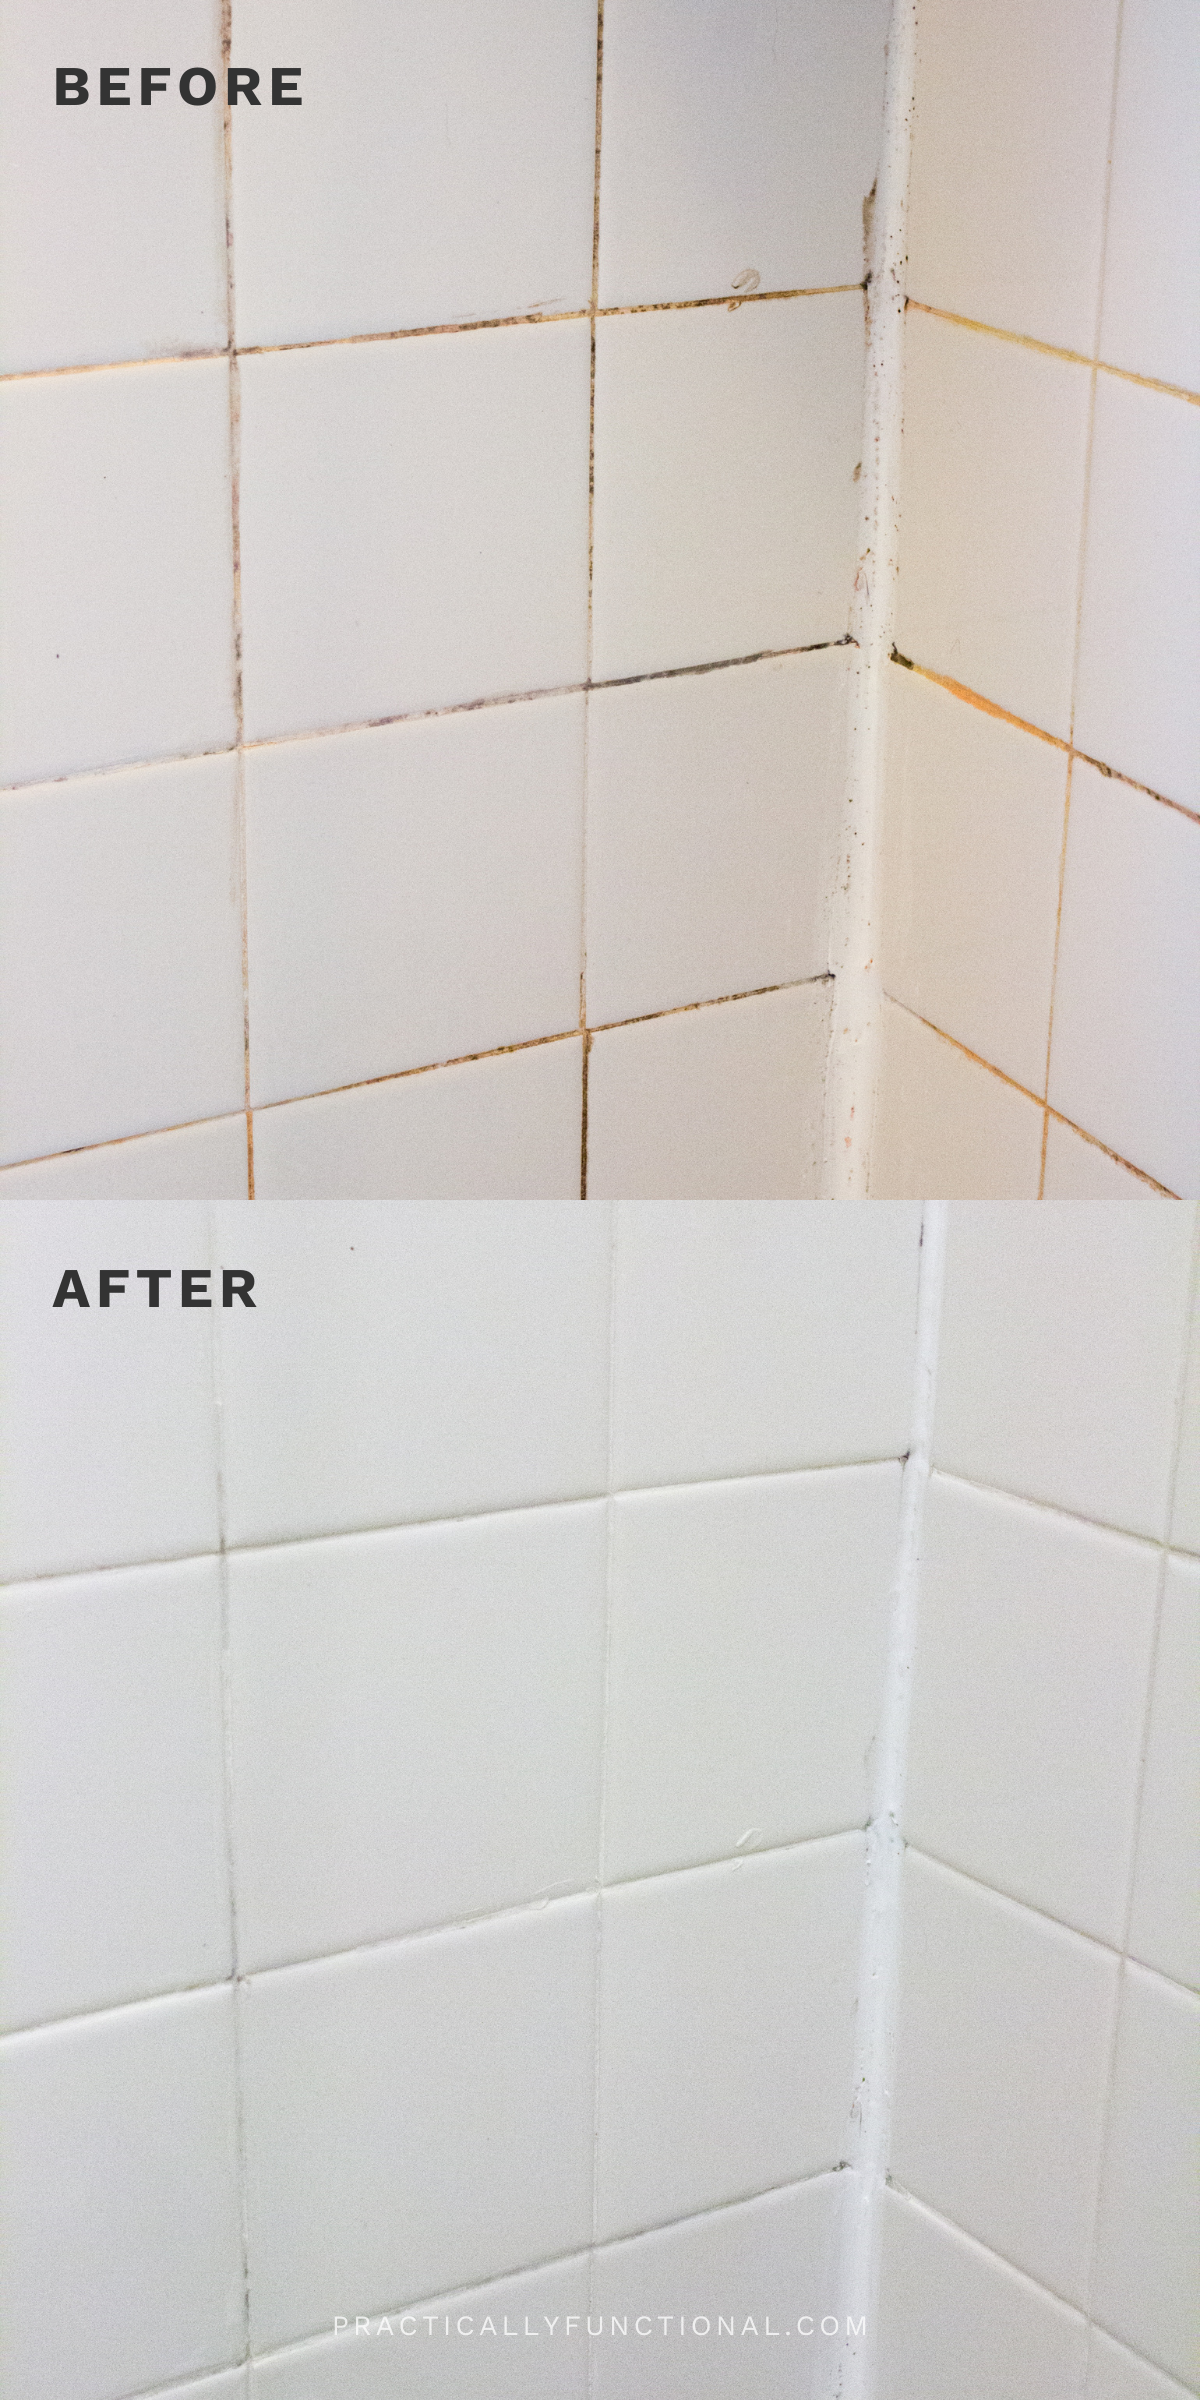 How To Clean Grout With A Homemade Grout Cleaner Practically Functional